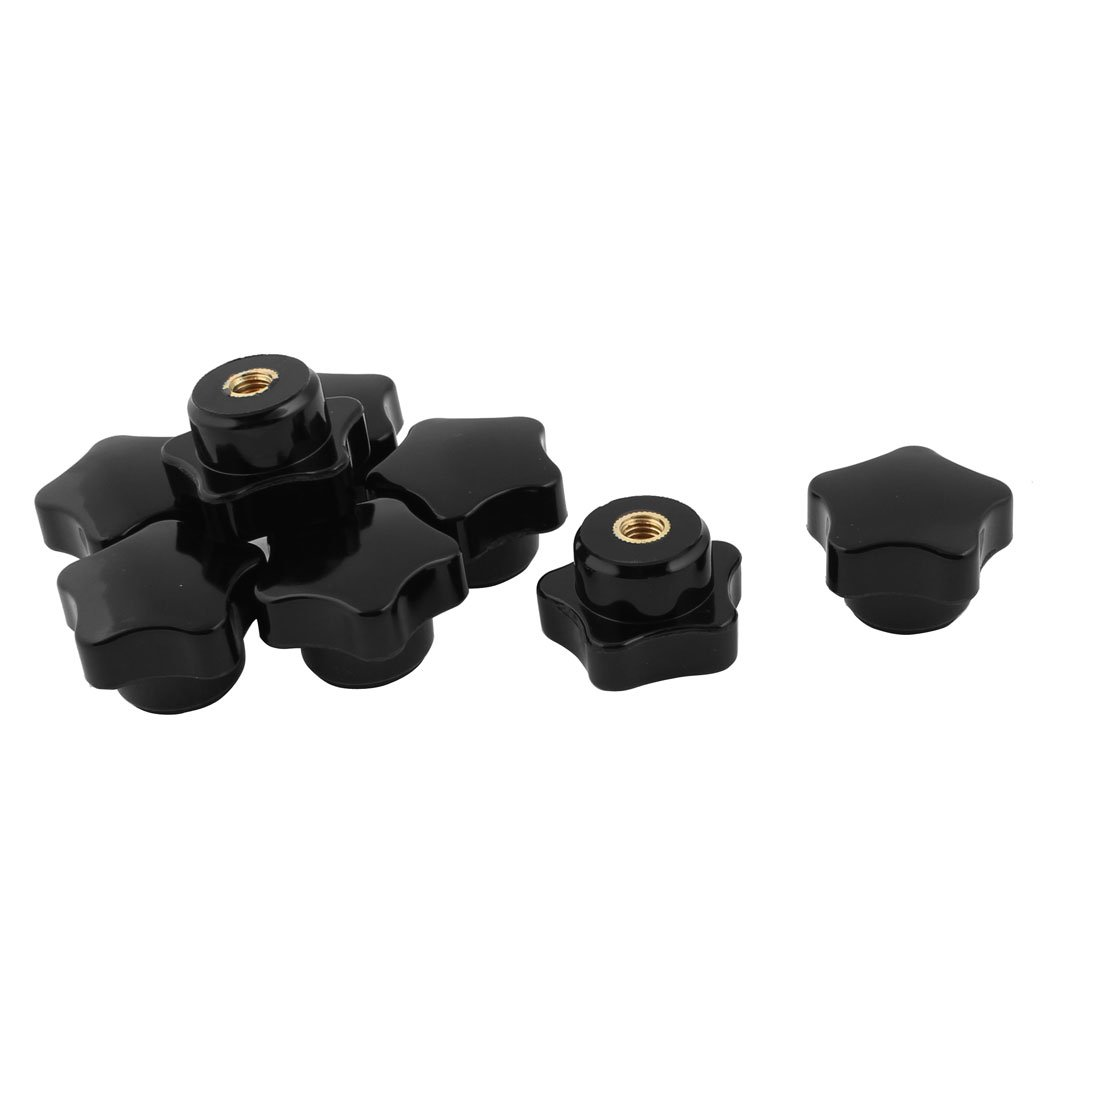 sourcingmap® Star Head Screw Clamping Knob Handle Grip 5mm Female Thread 8pcs Black a15121900ux2145